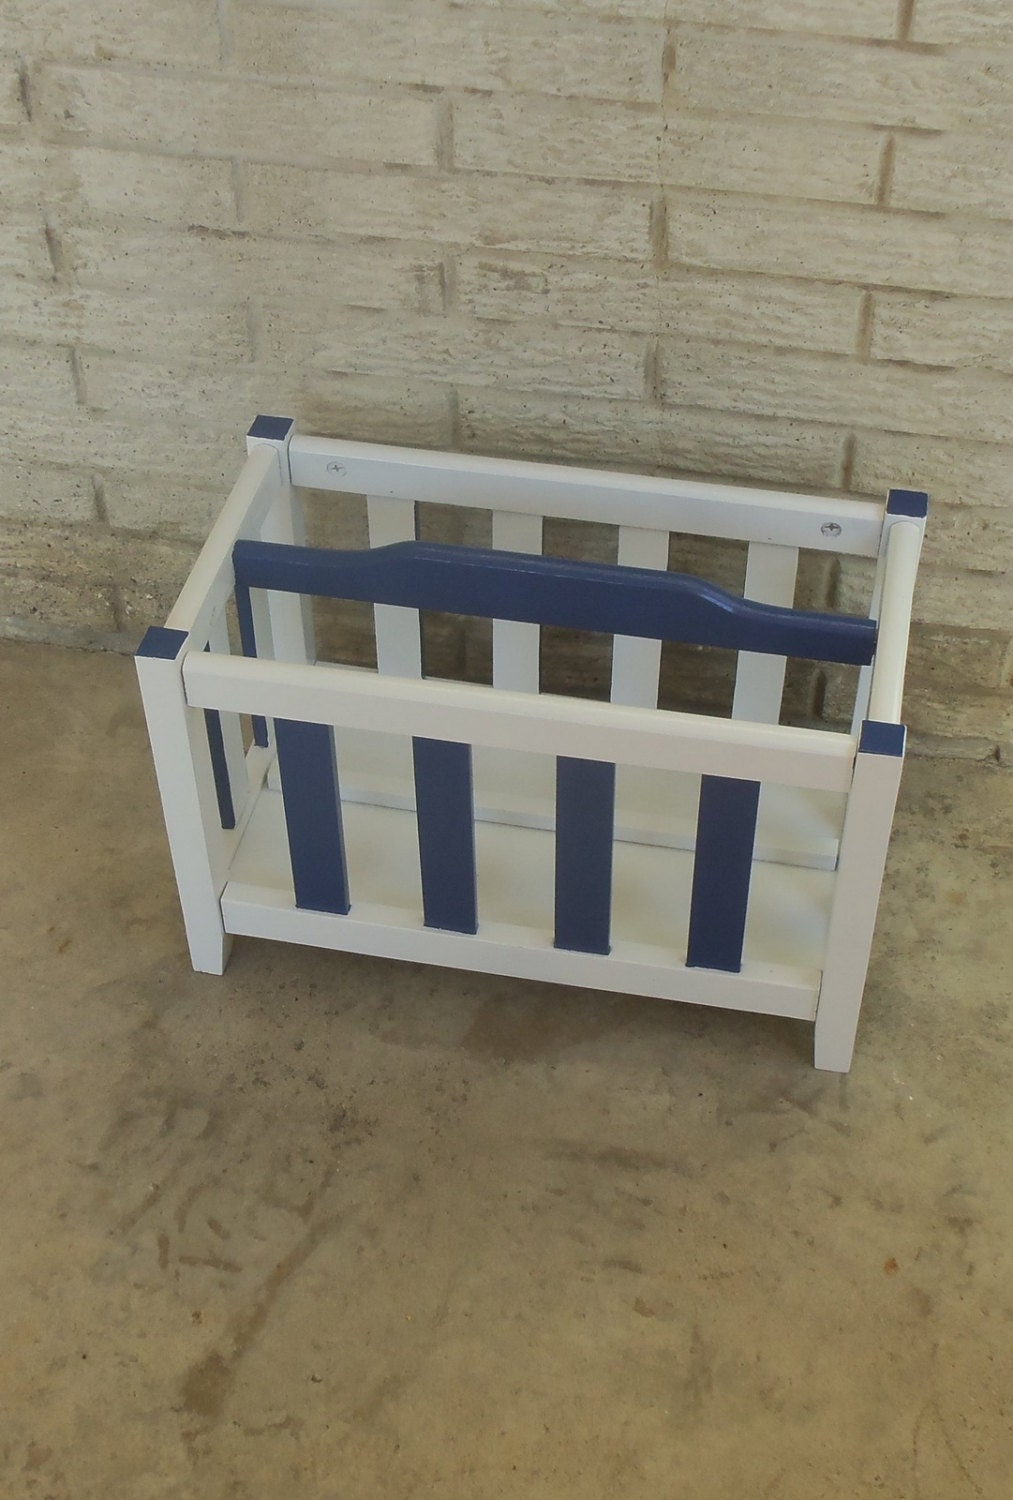 nautical magazine rack book bin toy storage navy blue white